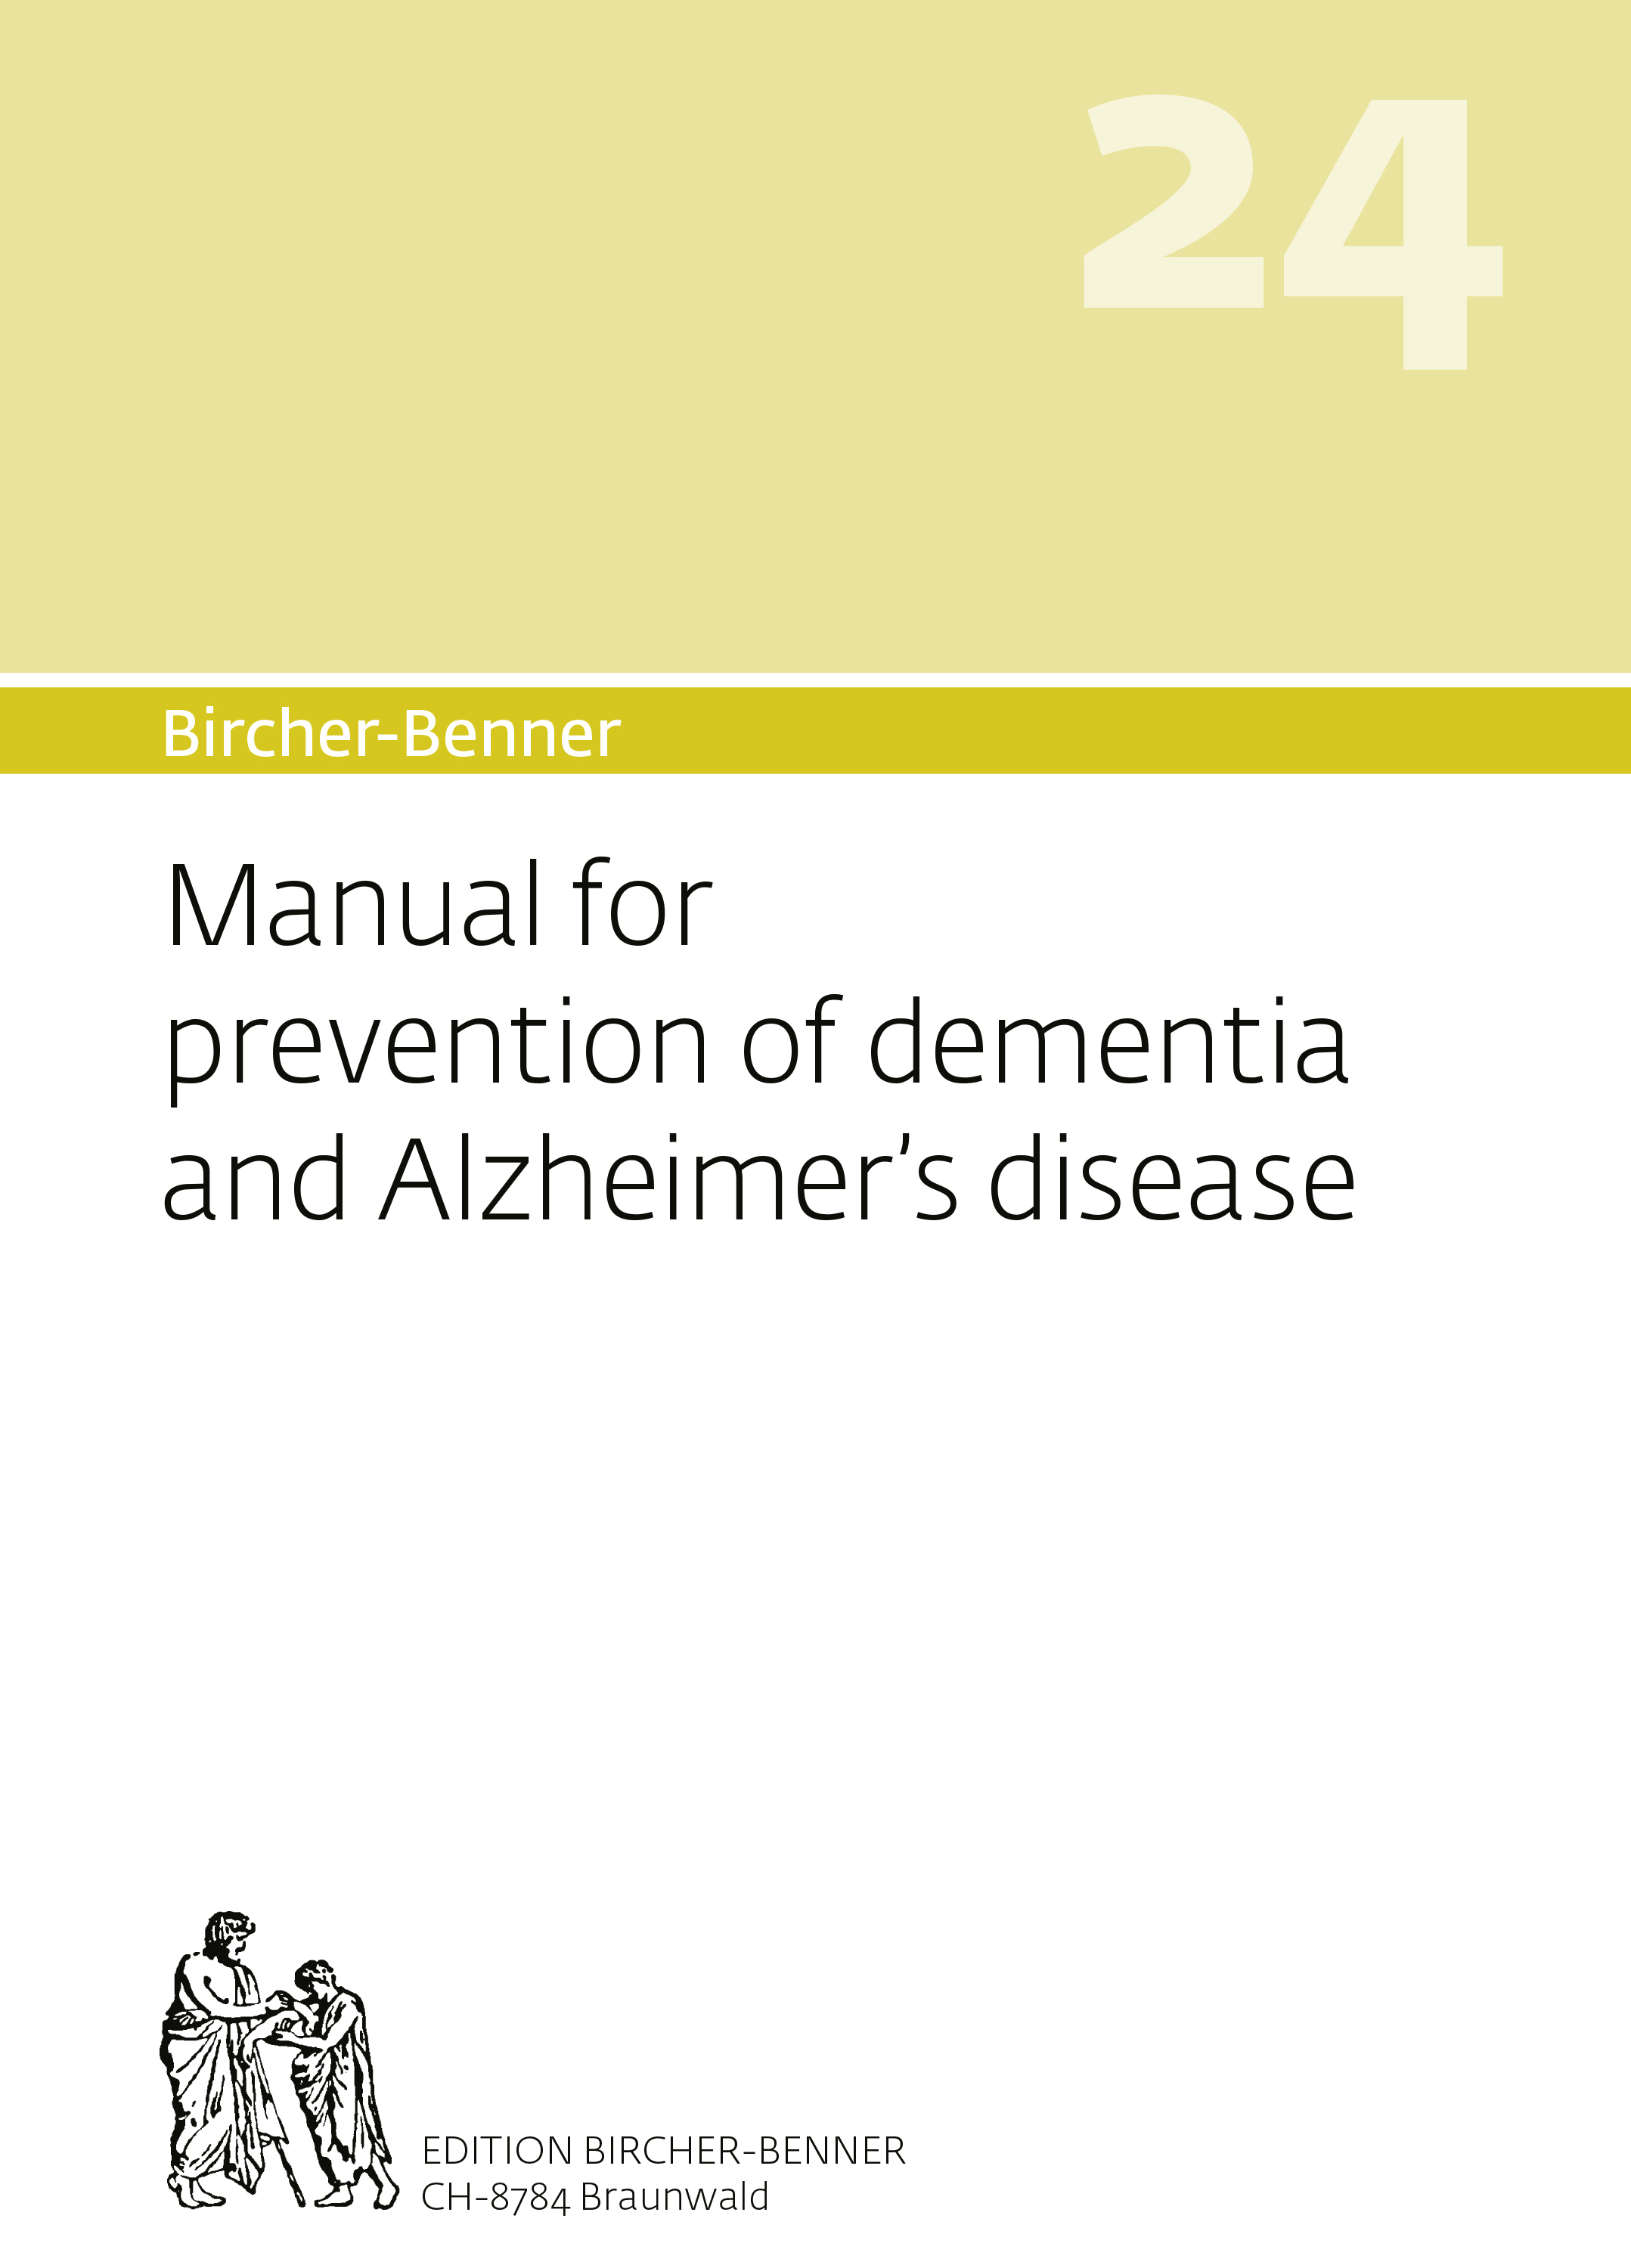 BIRCHER-BENNER 24, MANUAL FOR PREVENTION OF DEMENTIA AND ALZHEIMERS DISEASE